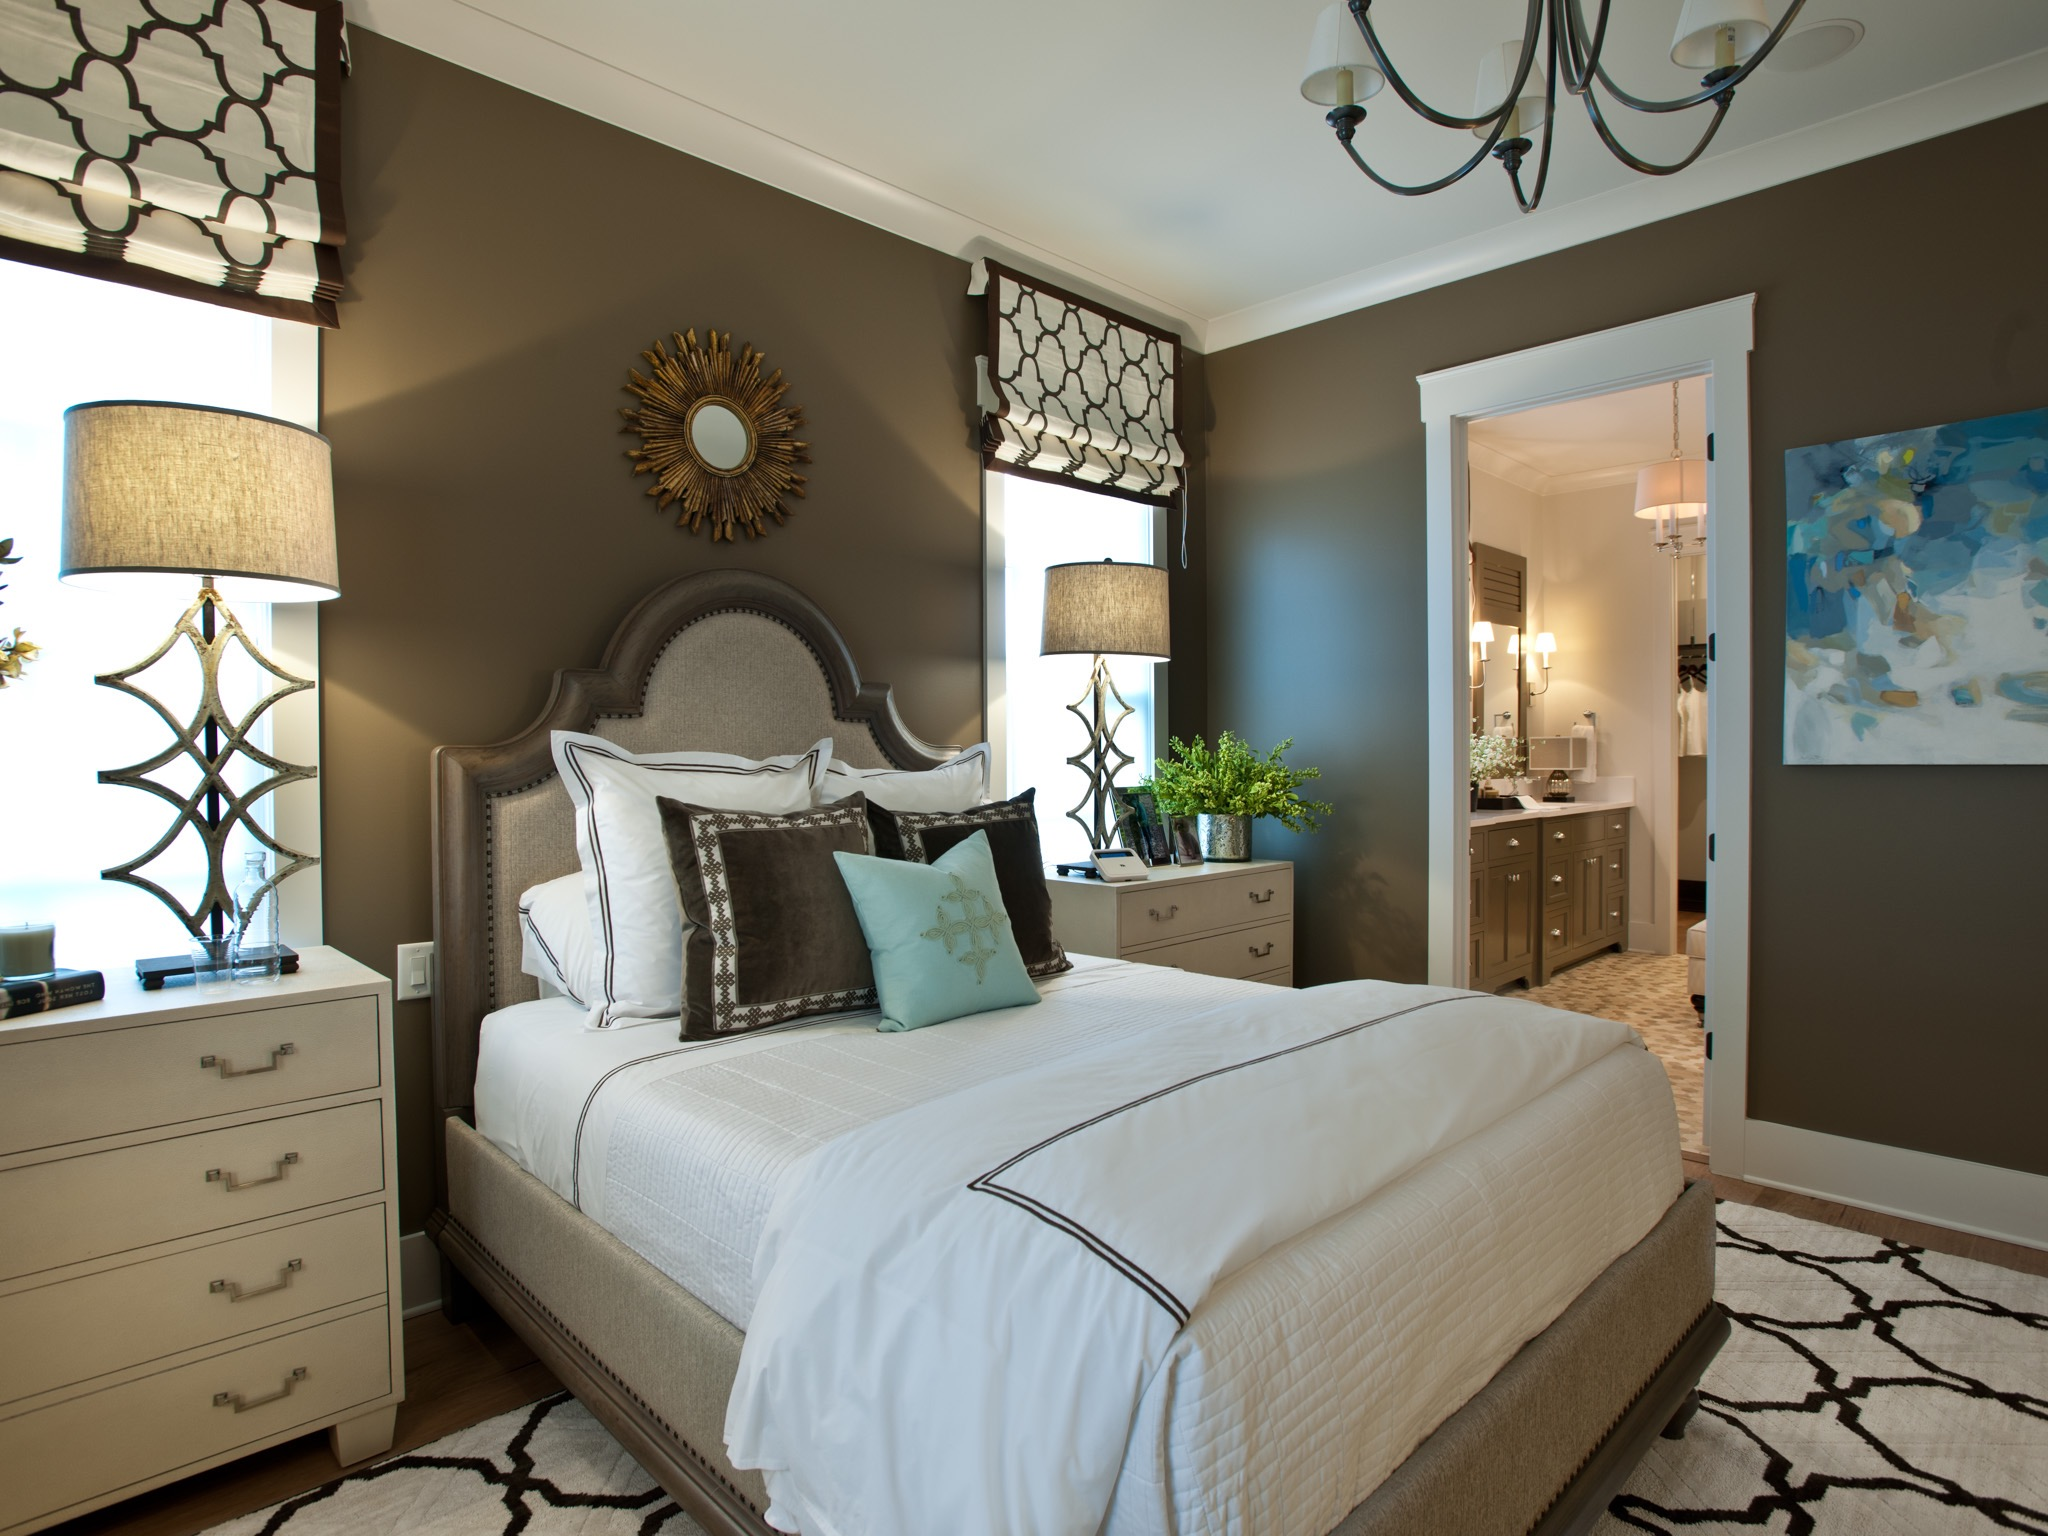 Master Bedroom With Italian Satin Stitch Bedding (Image 7 of 12)